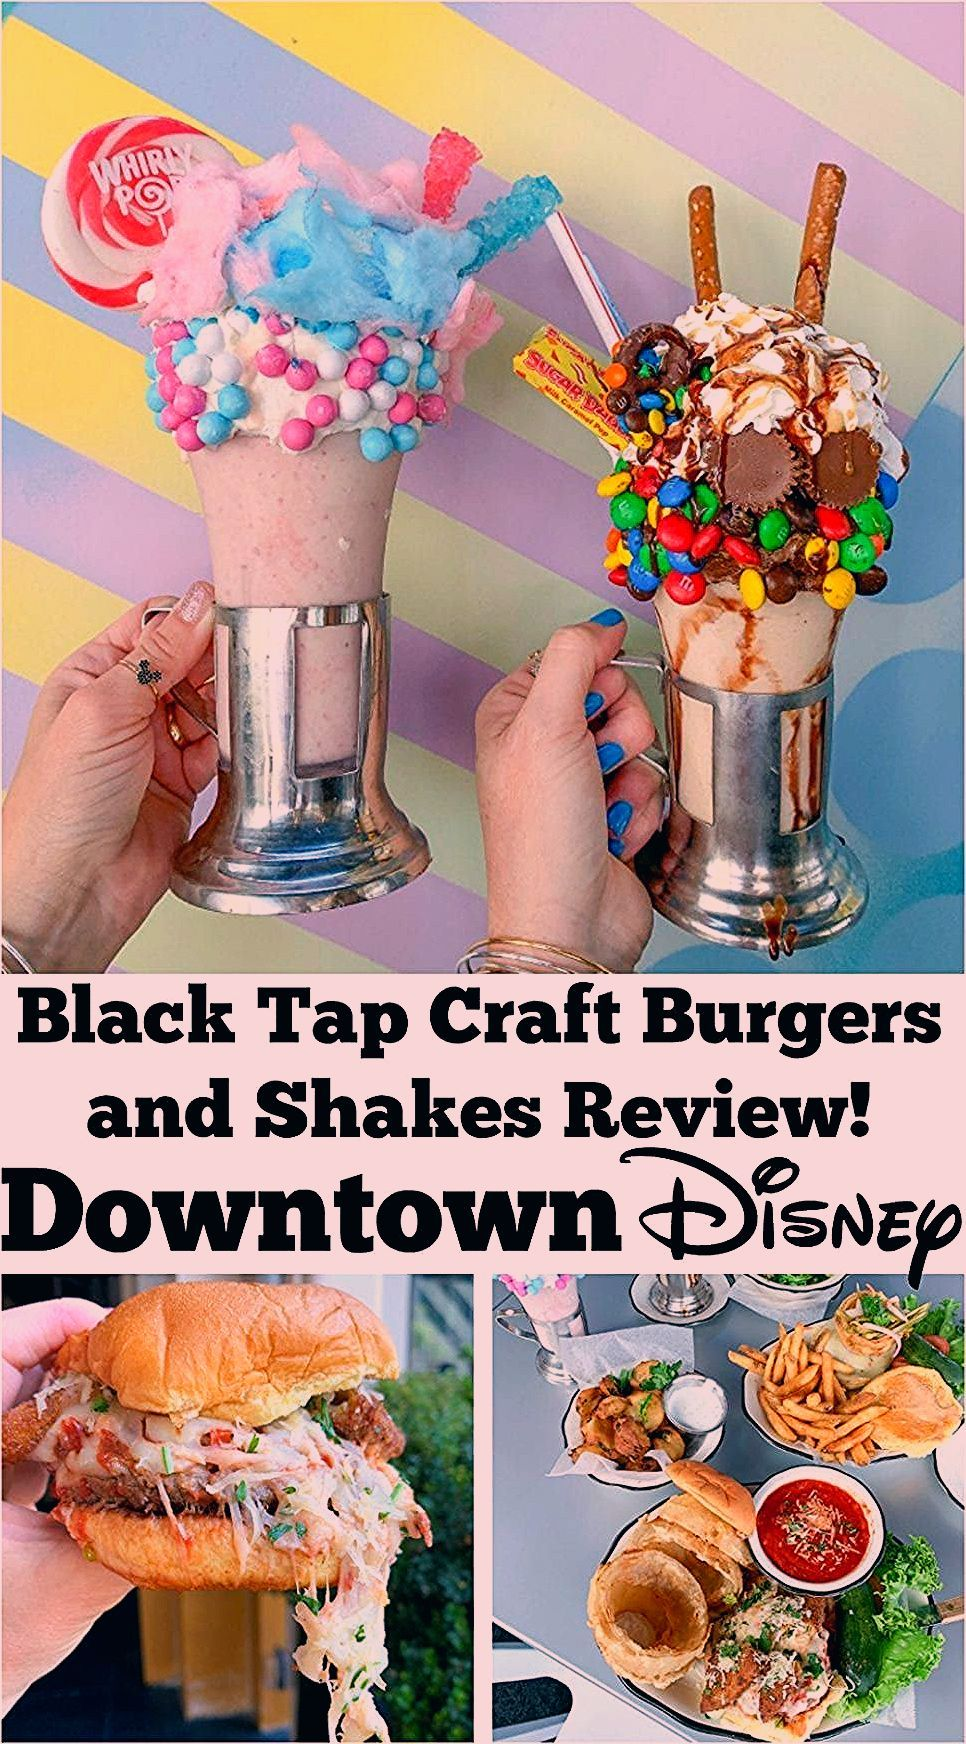 Photo of Black Tap Craft Burgers and Shakes Review Downtown Disney!